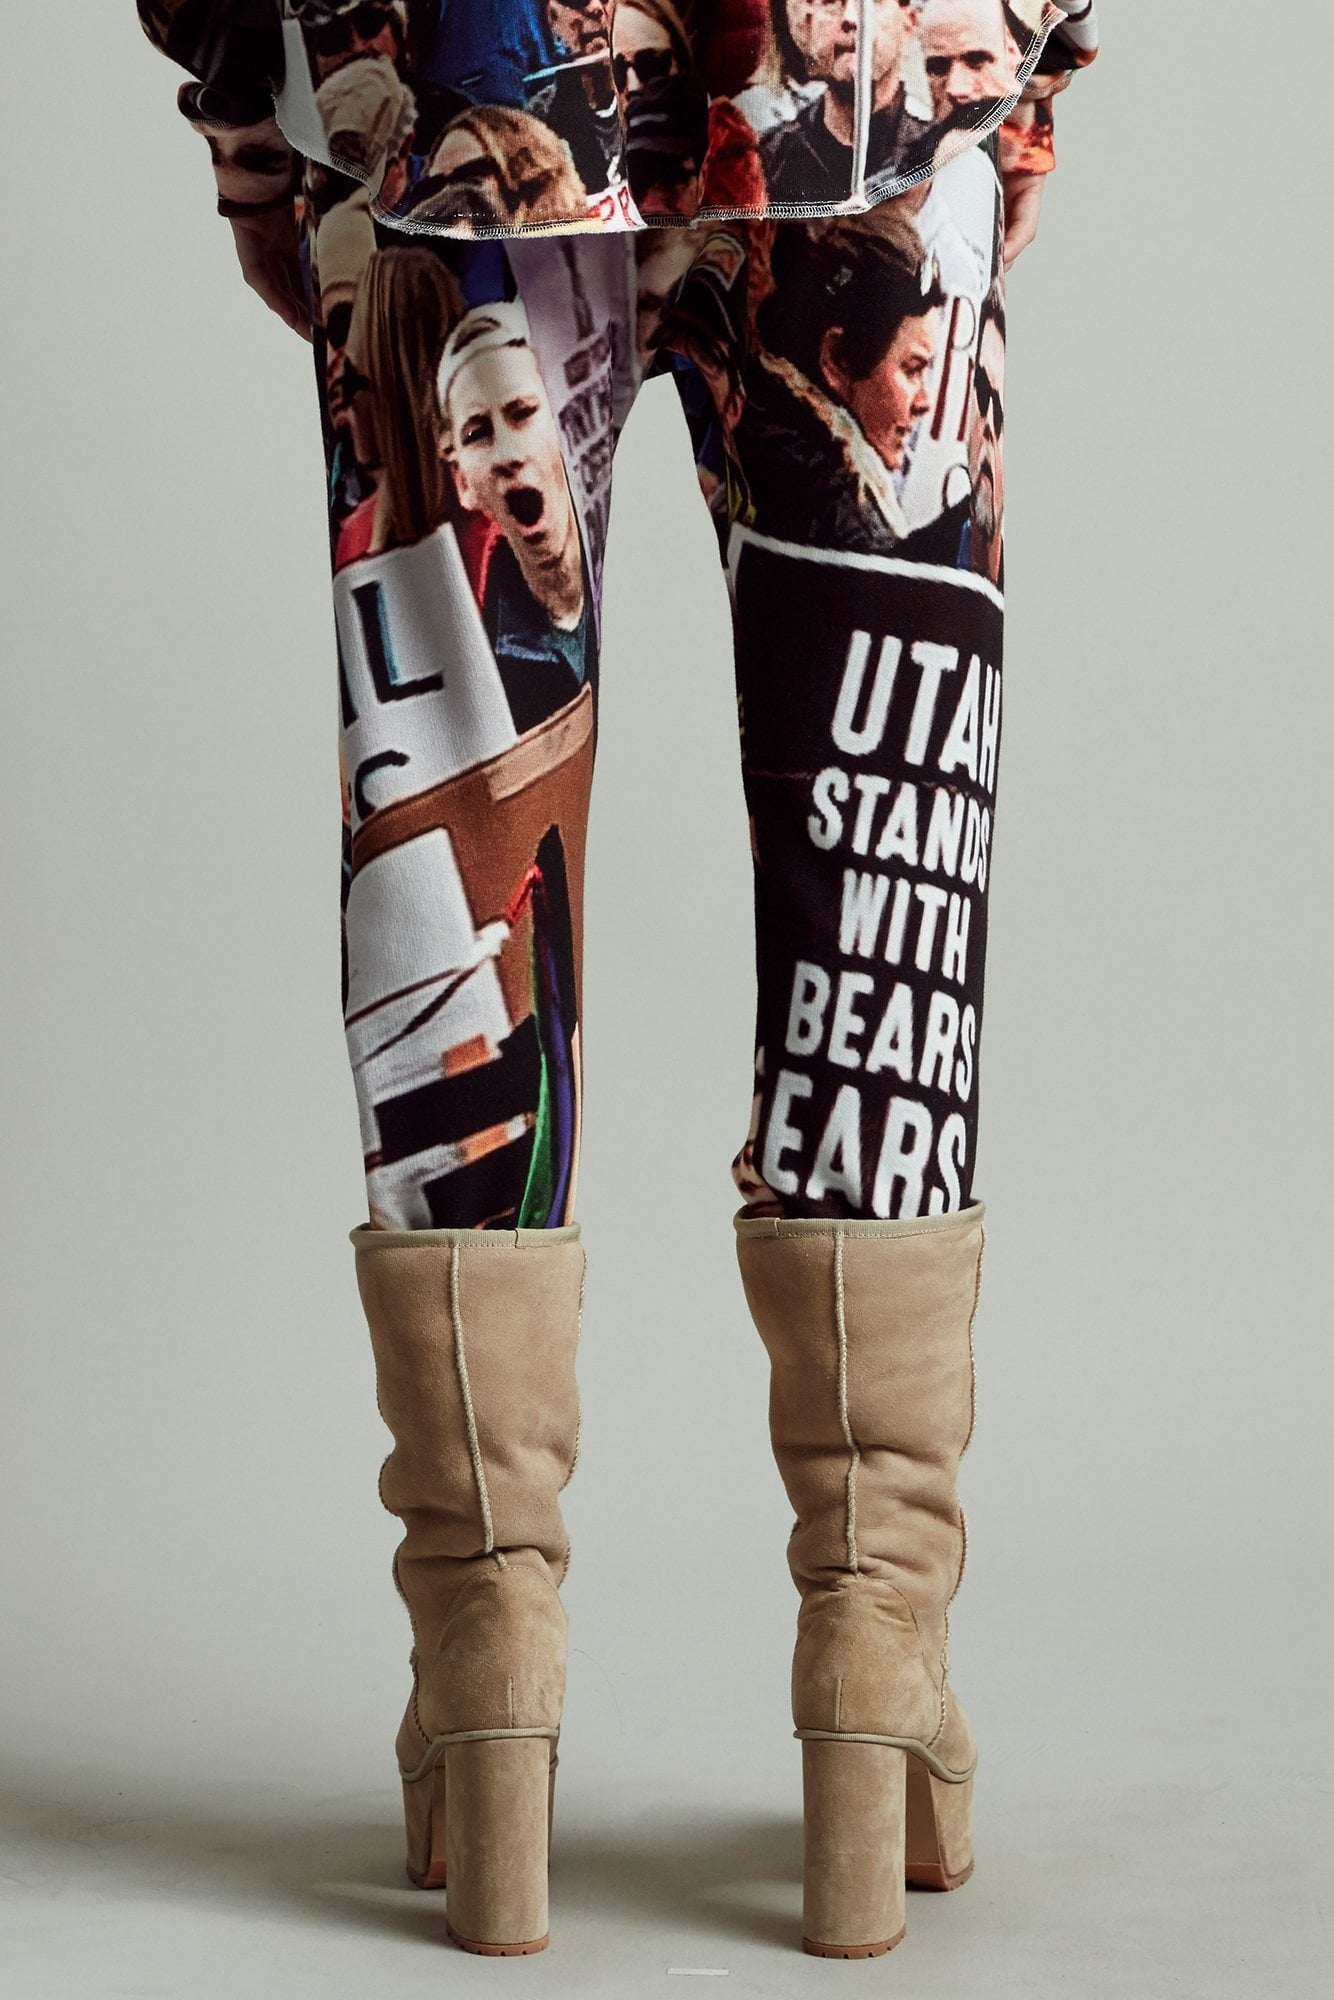 Bears Ears Sweatpants